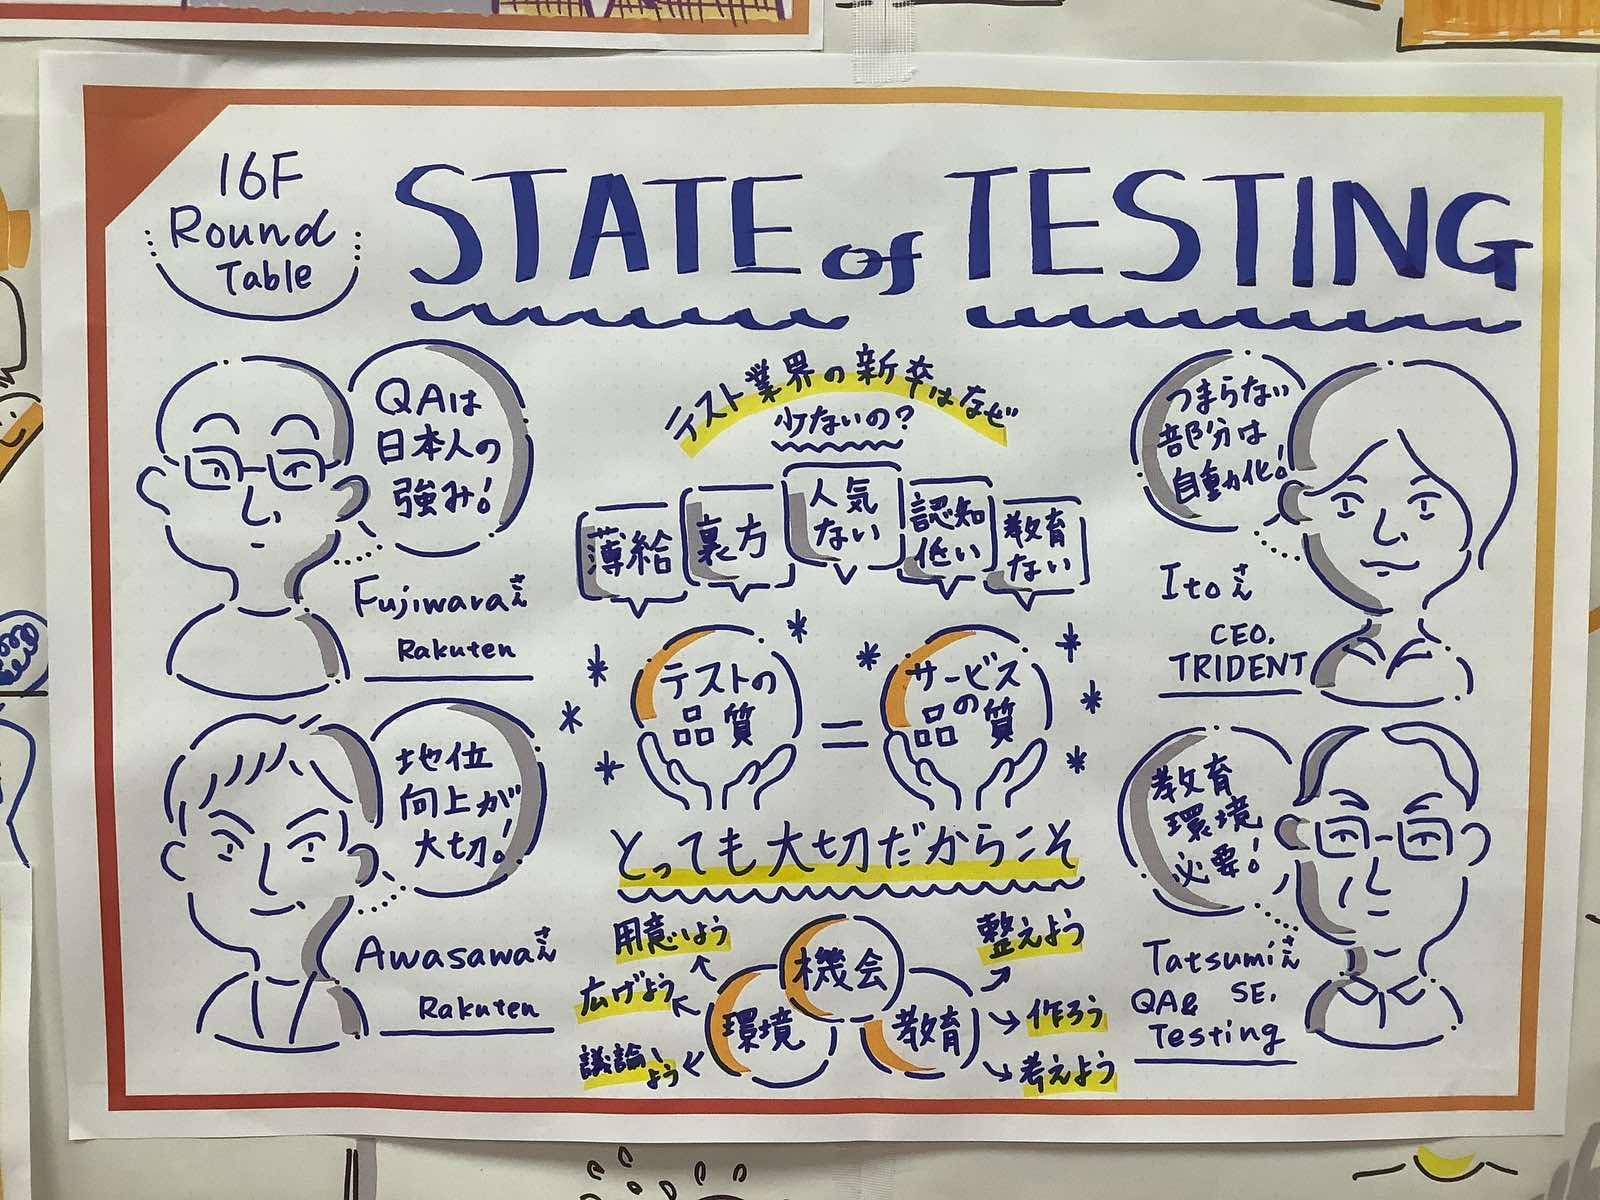 State of Testing